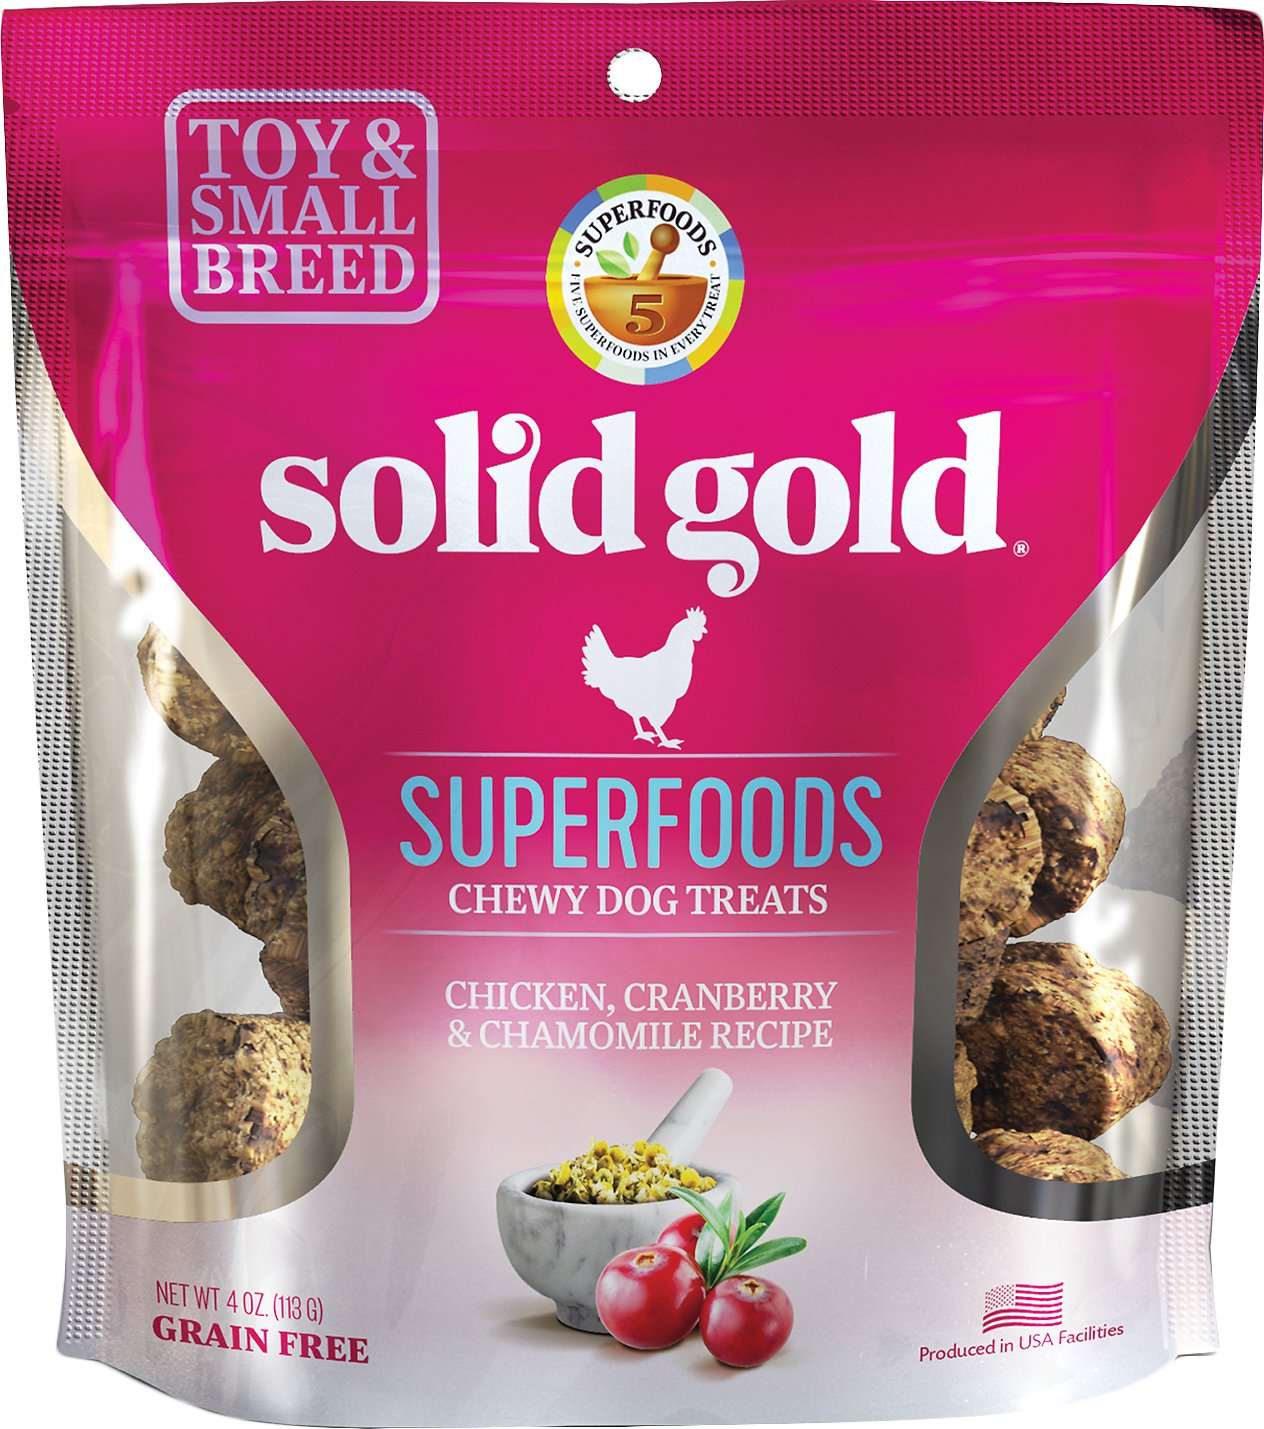 Solid Gold Superfoods Chicken, Cranberry & Chamomile Recipe Small Breed Chewy Grain-Free Dog Treats, 4-oz bag